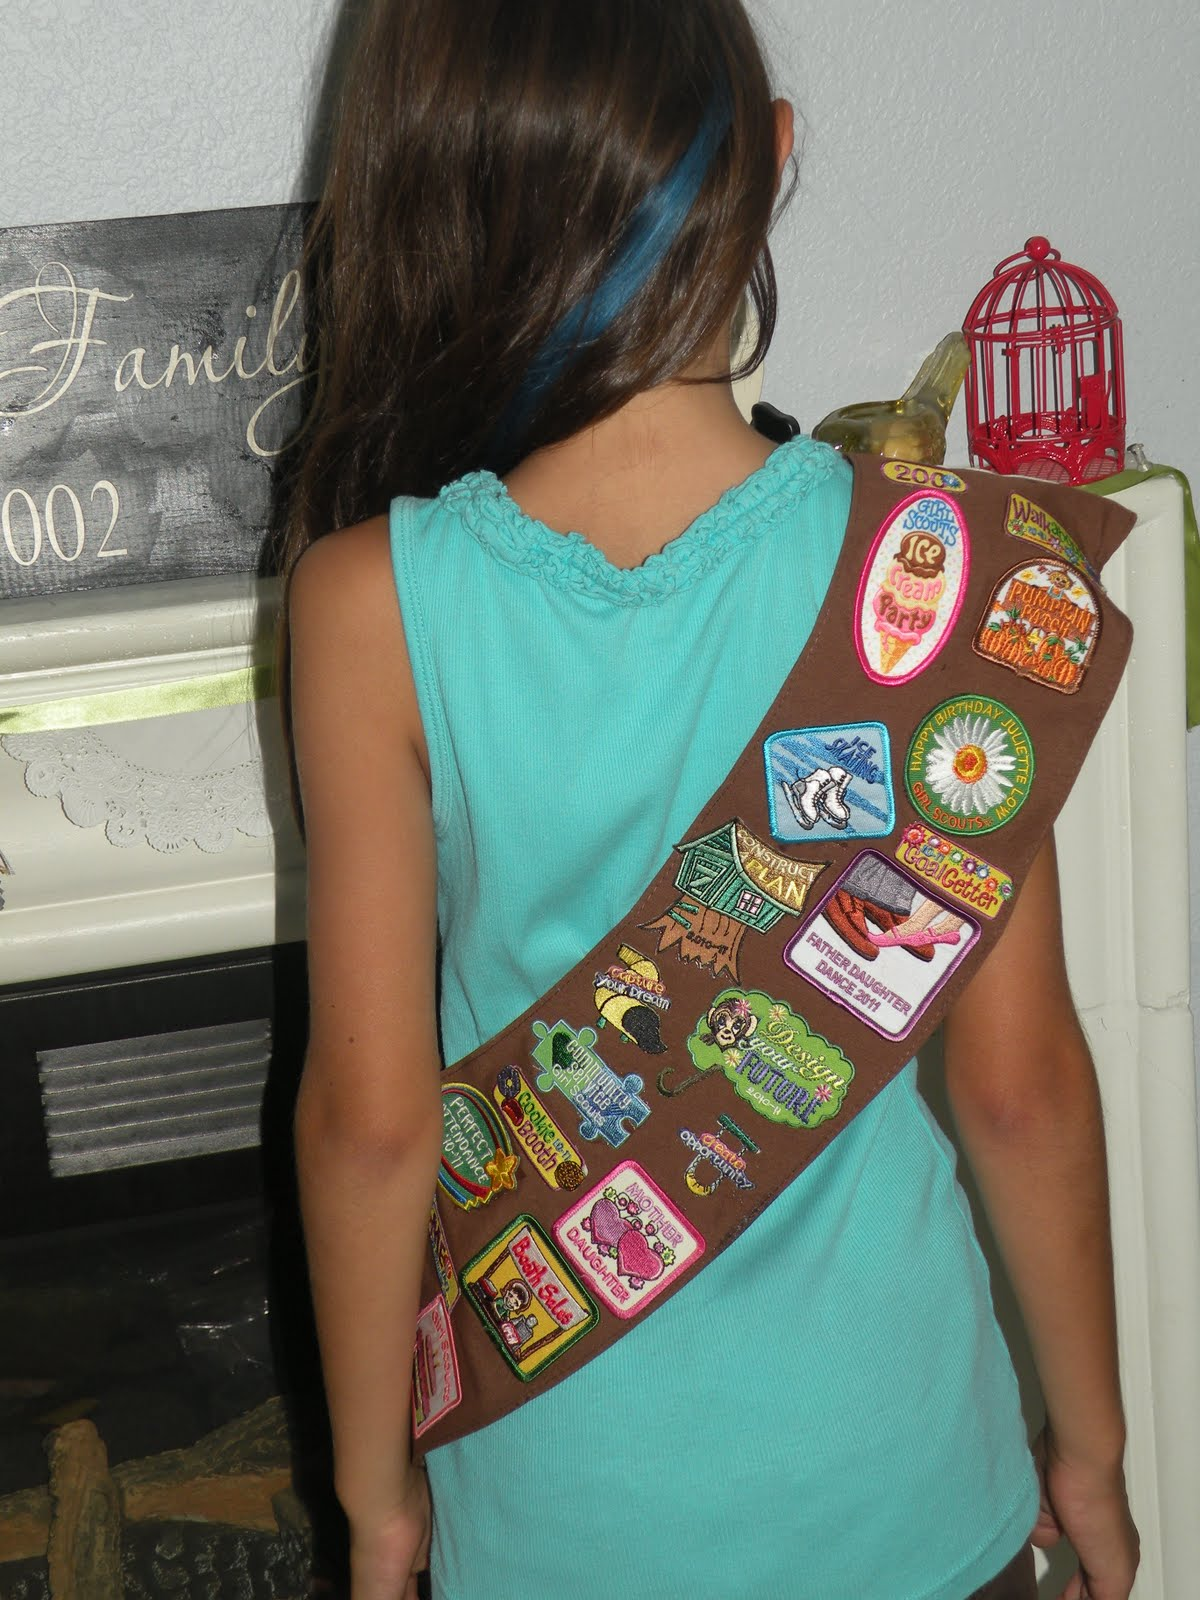 Brownie fun patch placement